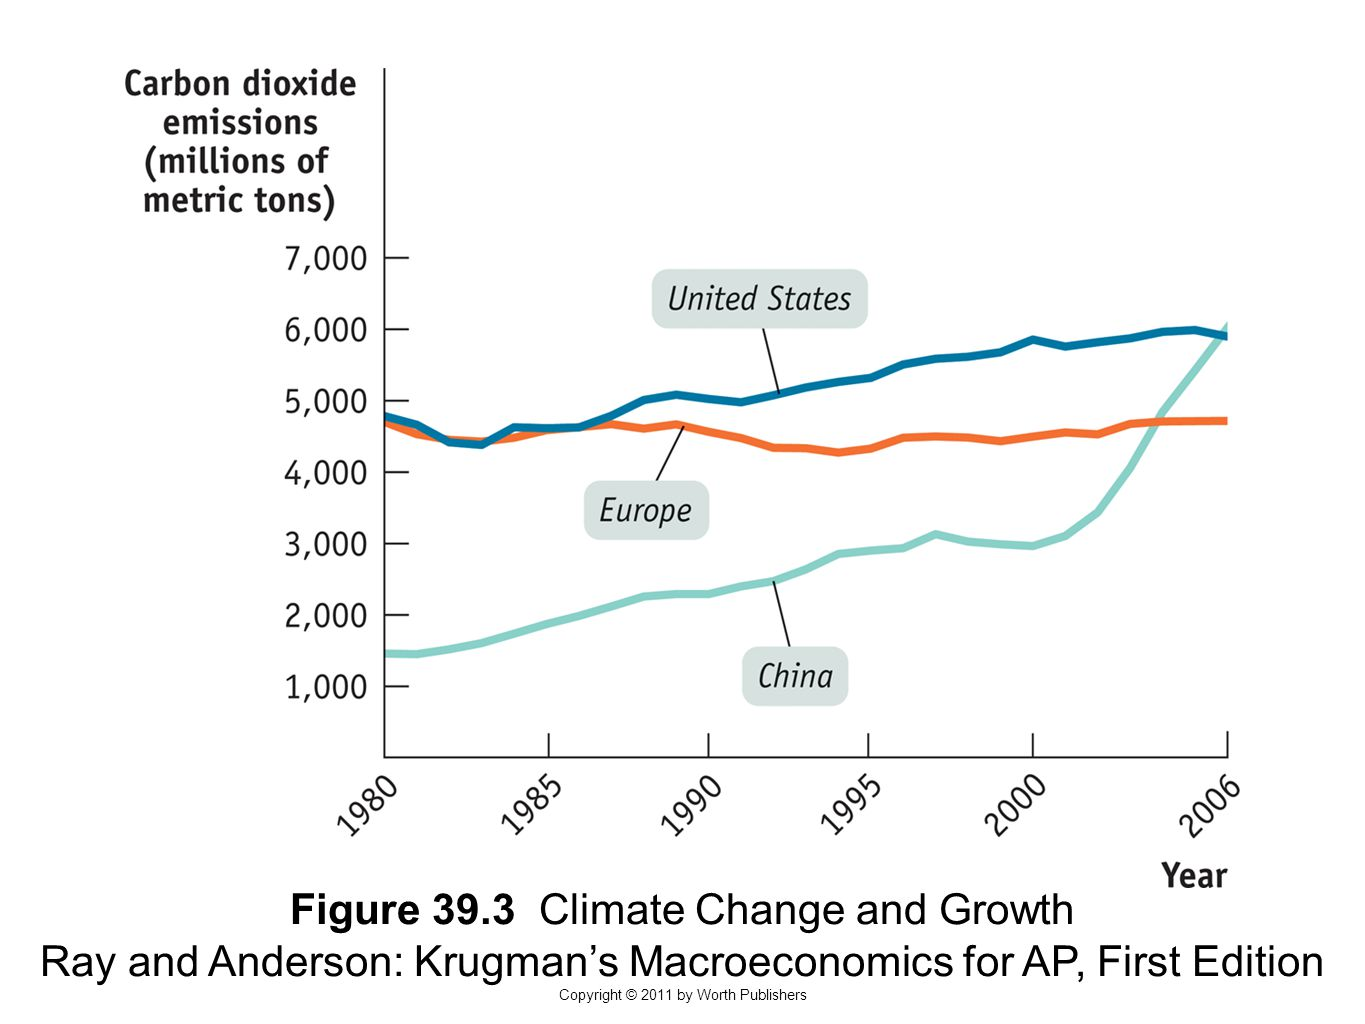 Figure 39.3 Climate Change and Growth Ray and Anderson: Krugman's Macroeconomics for AP, First Edition Copyright © 2011 by Worth Publishers